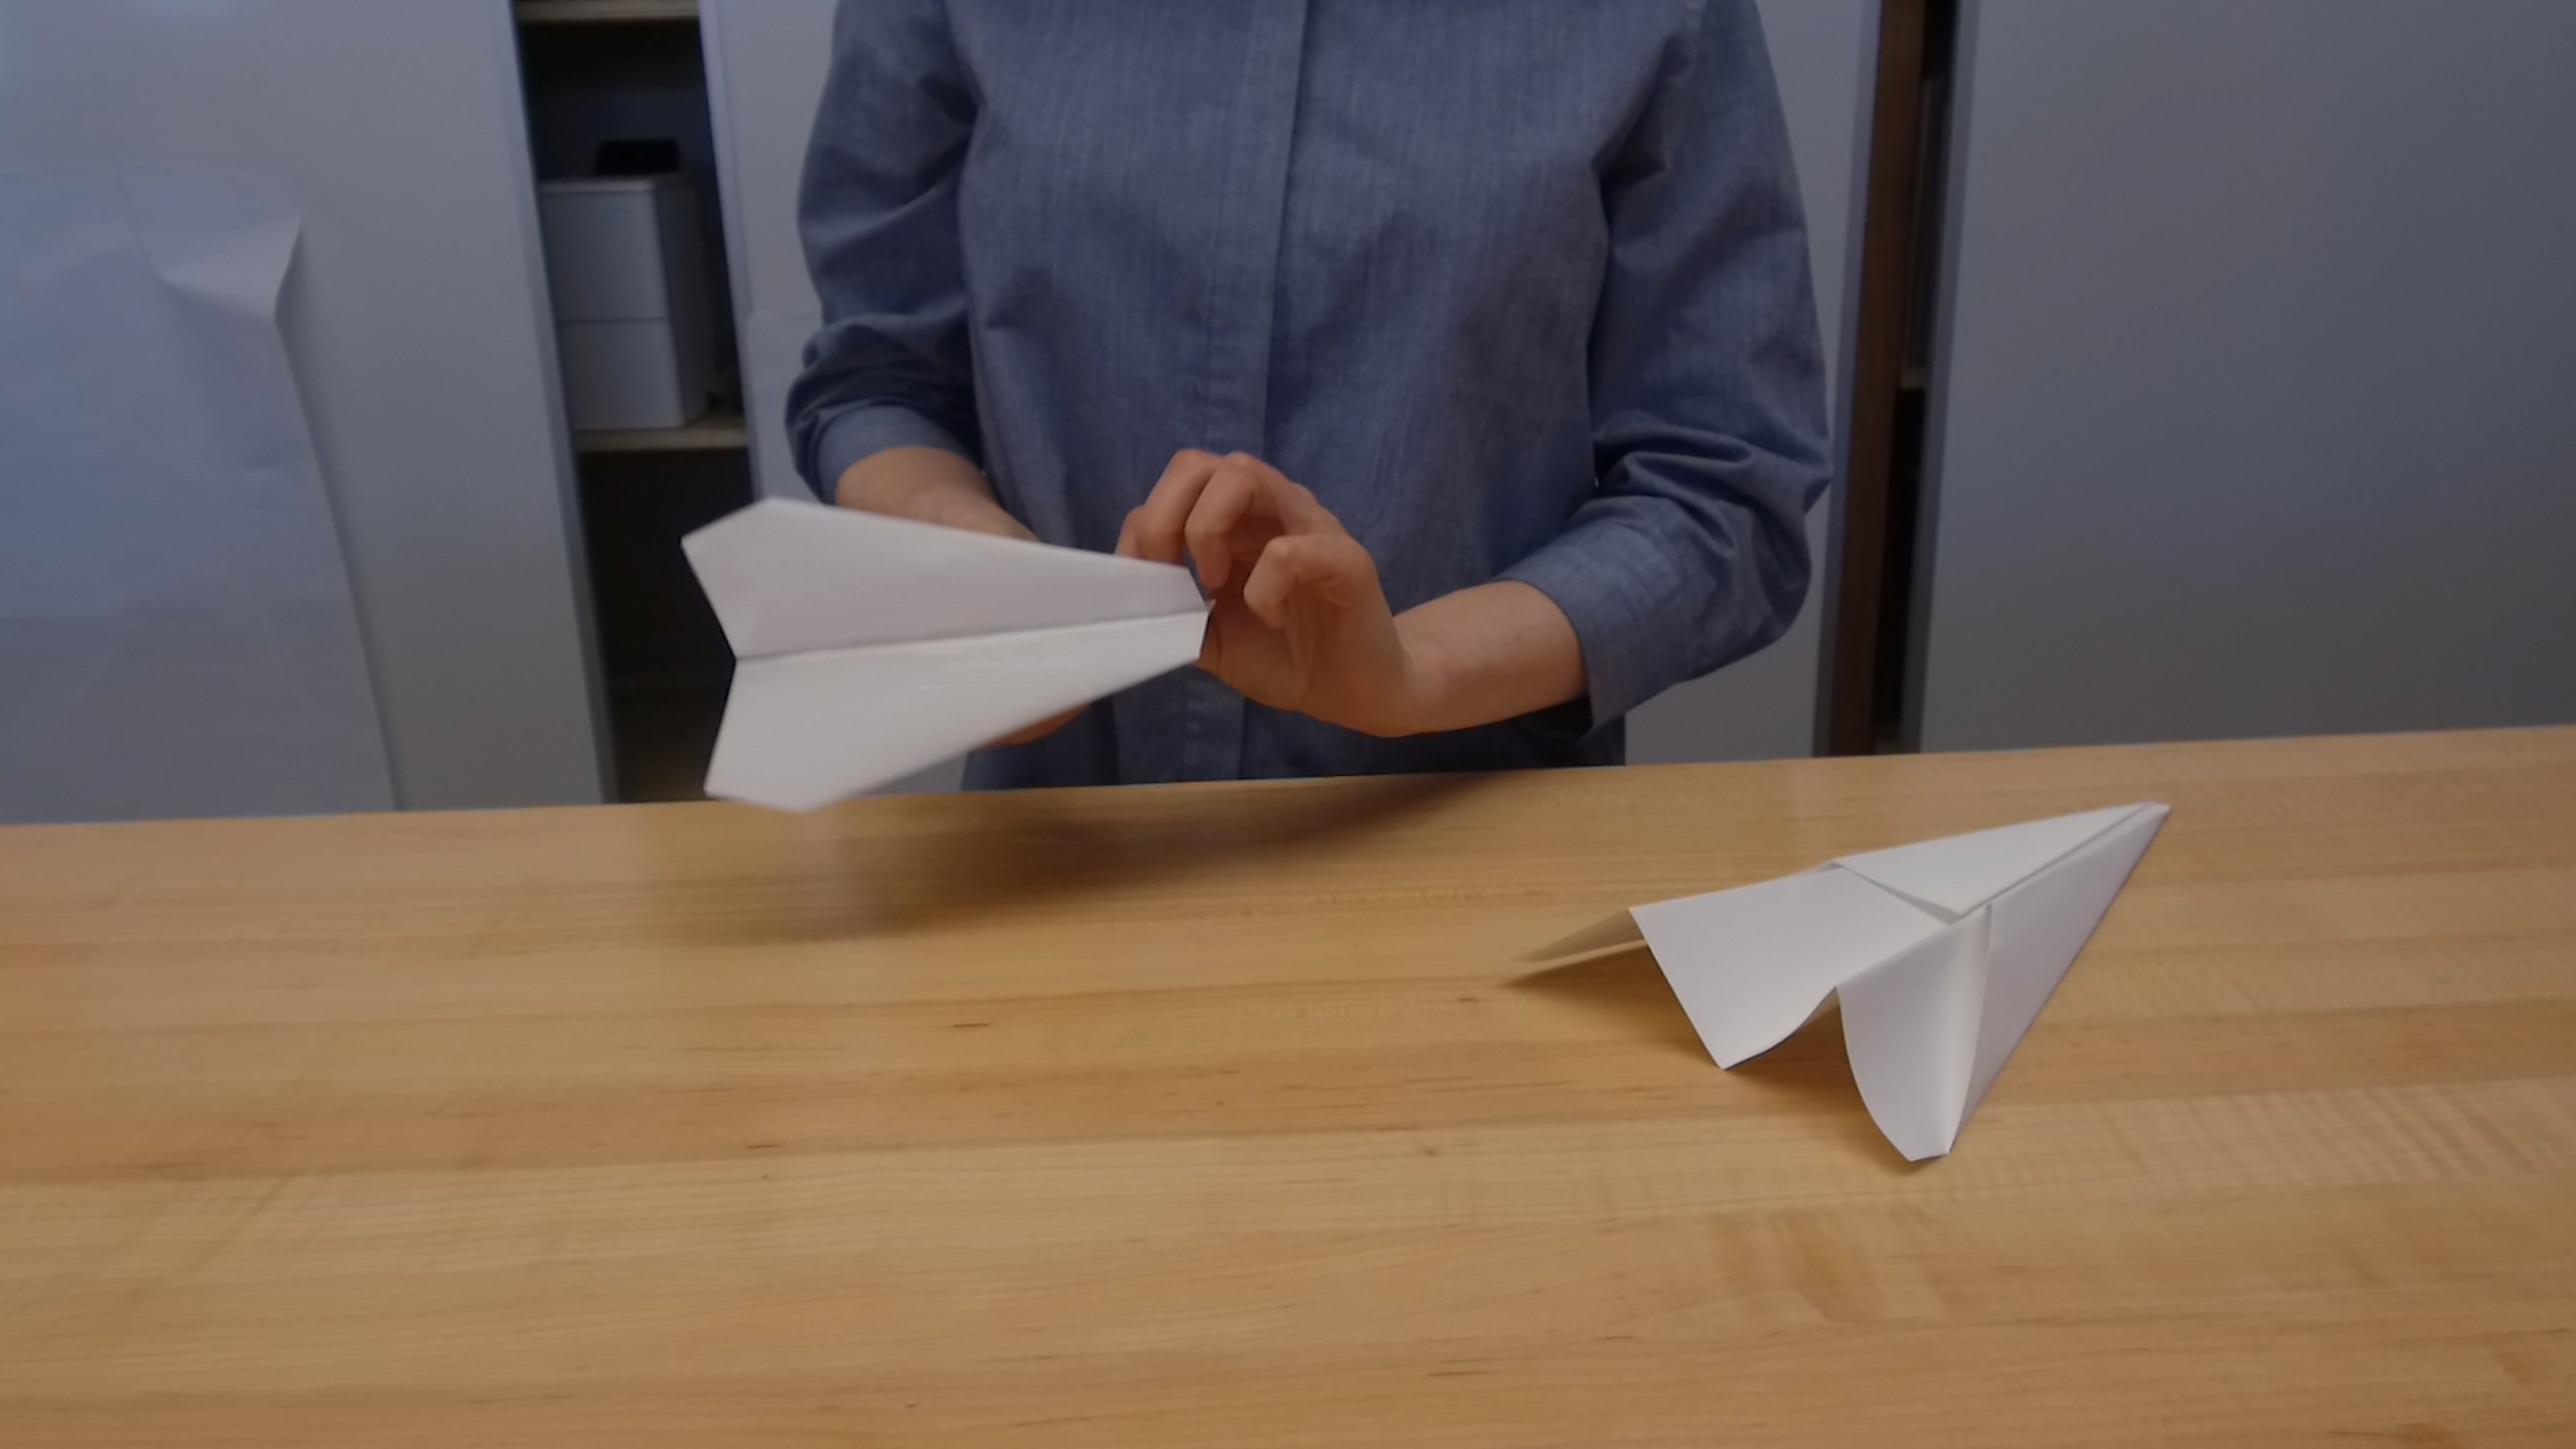 paper modeling activity